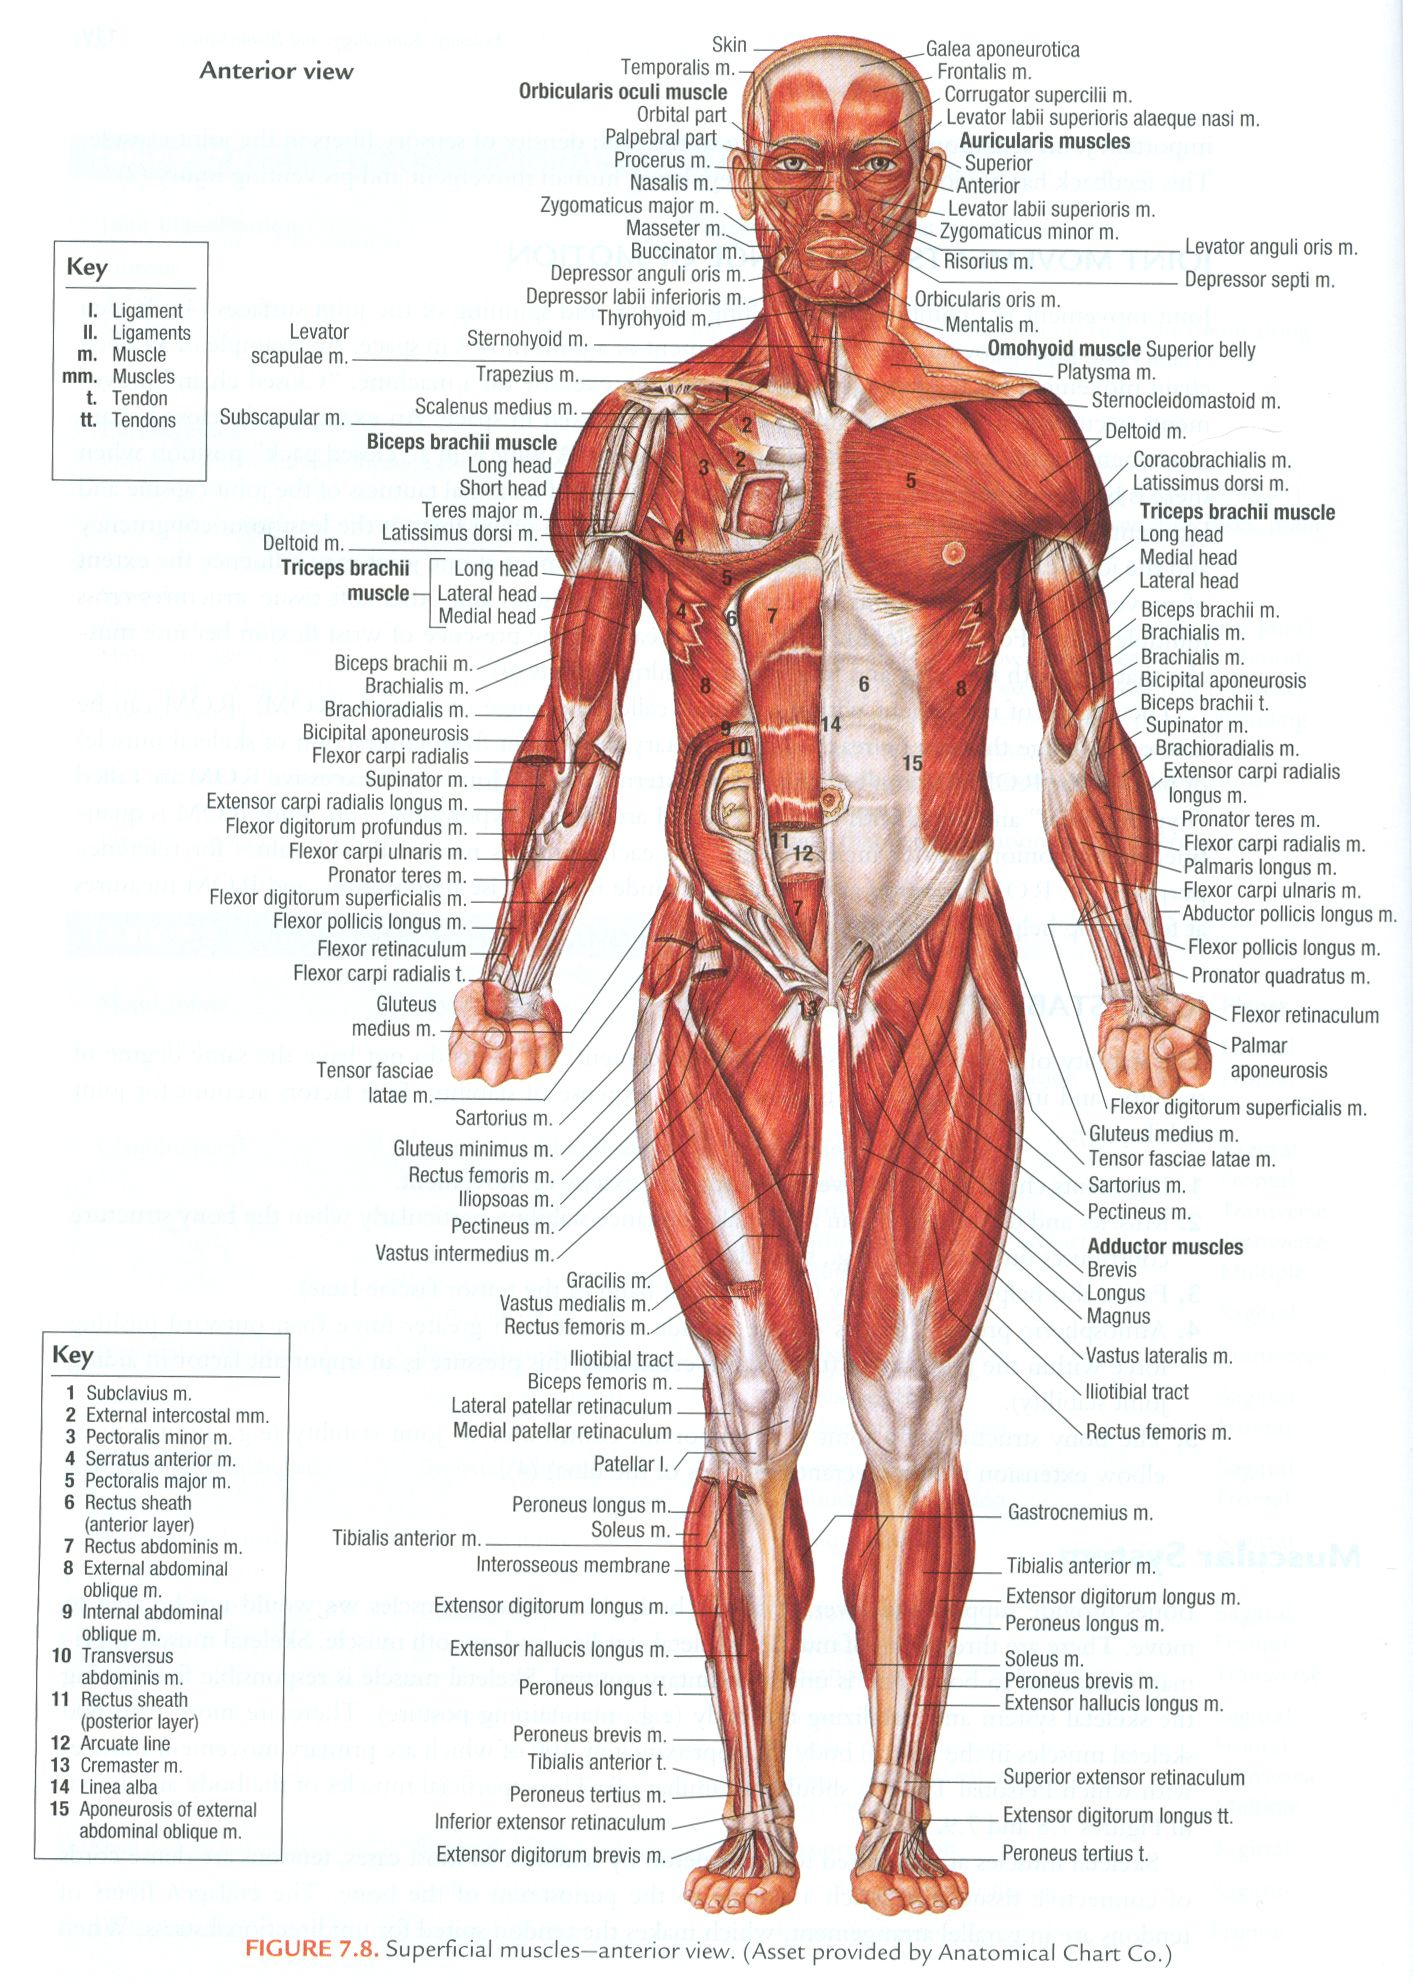 Posterior Muscles Of The Human Body Posterior Muscles Of The Human ...